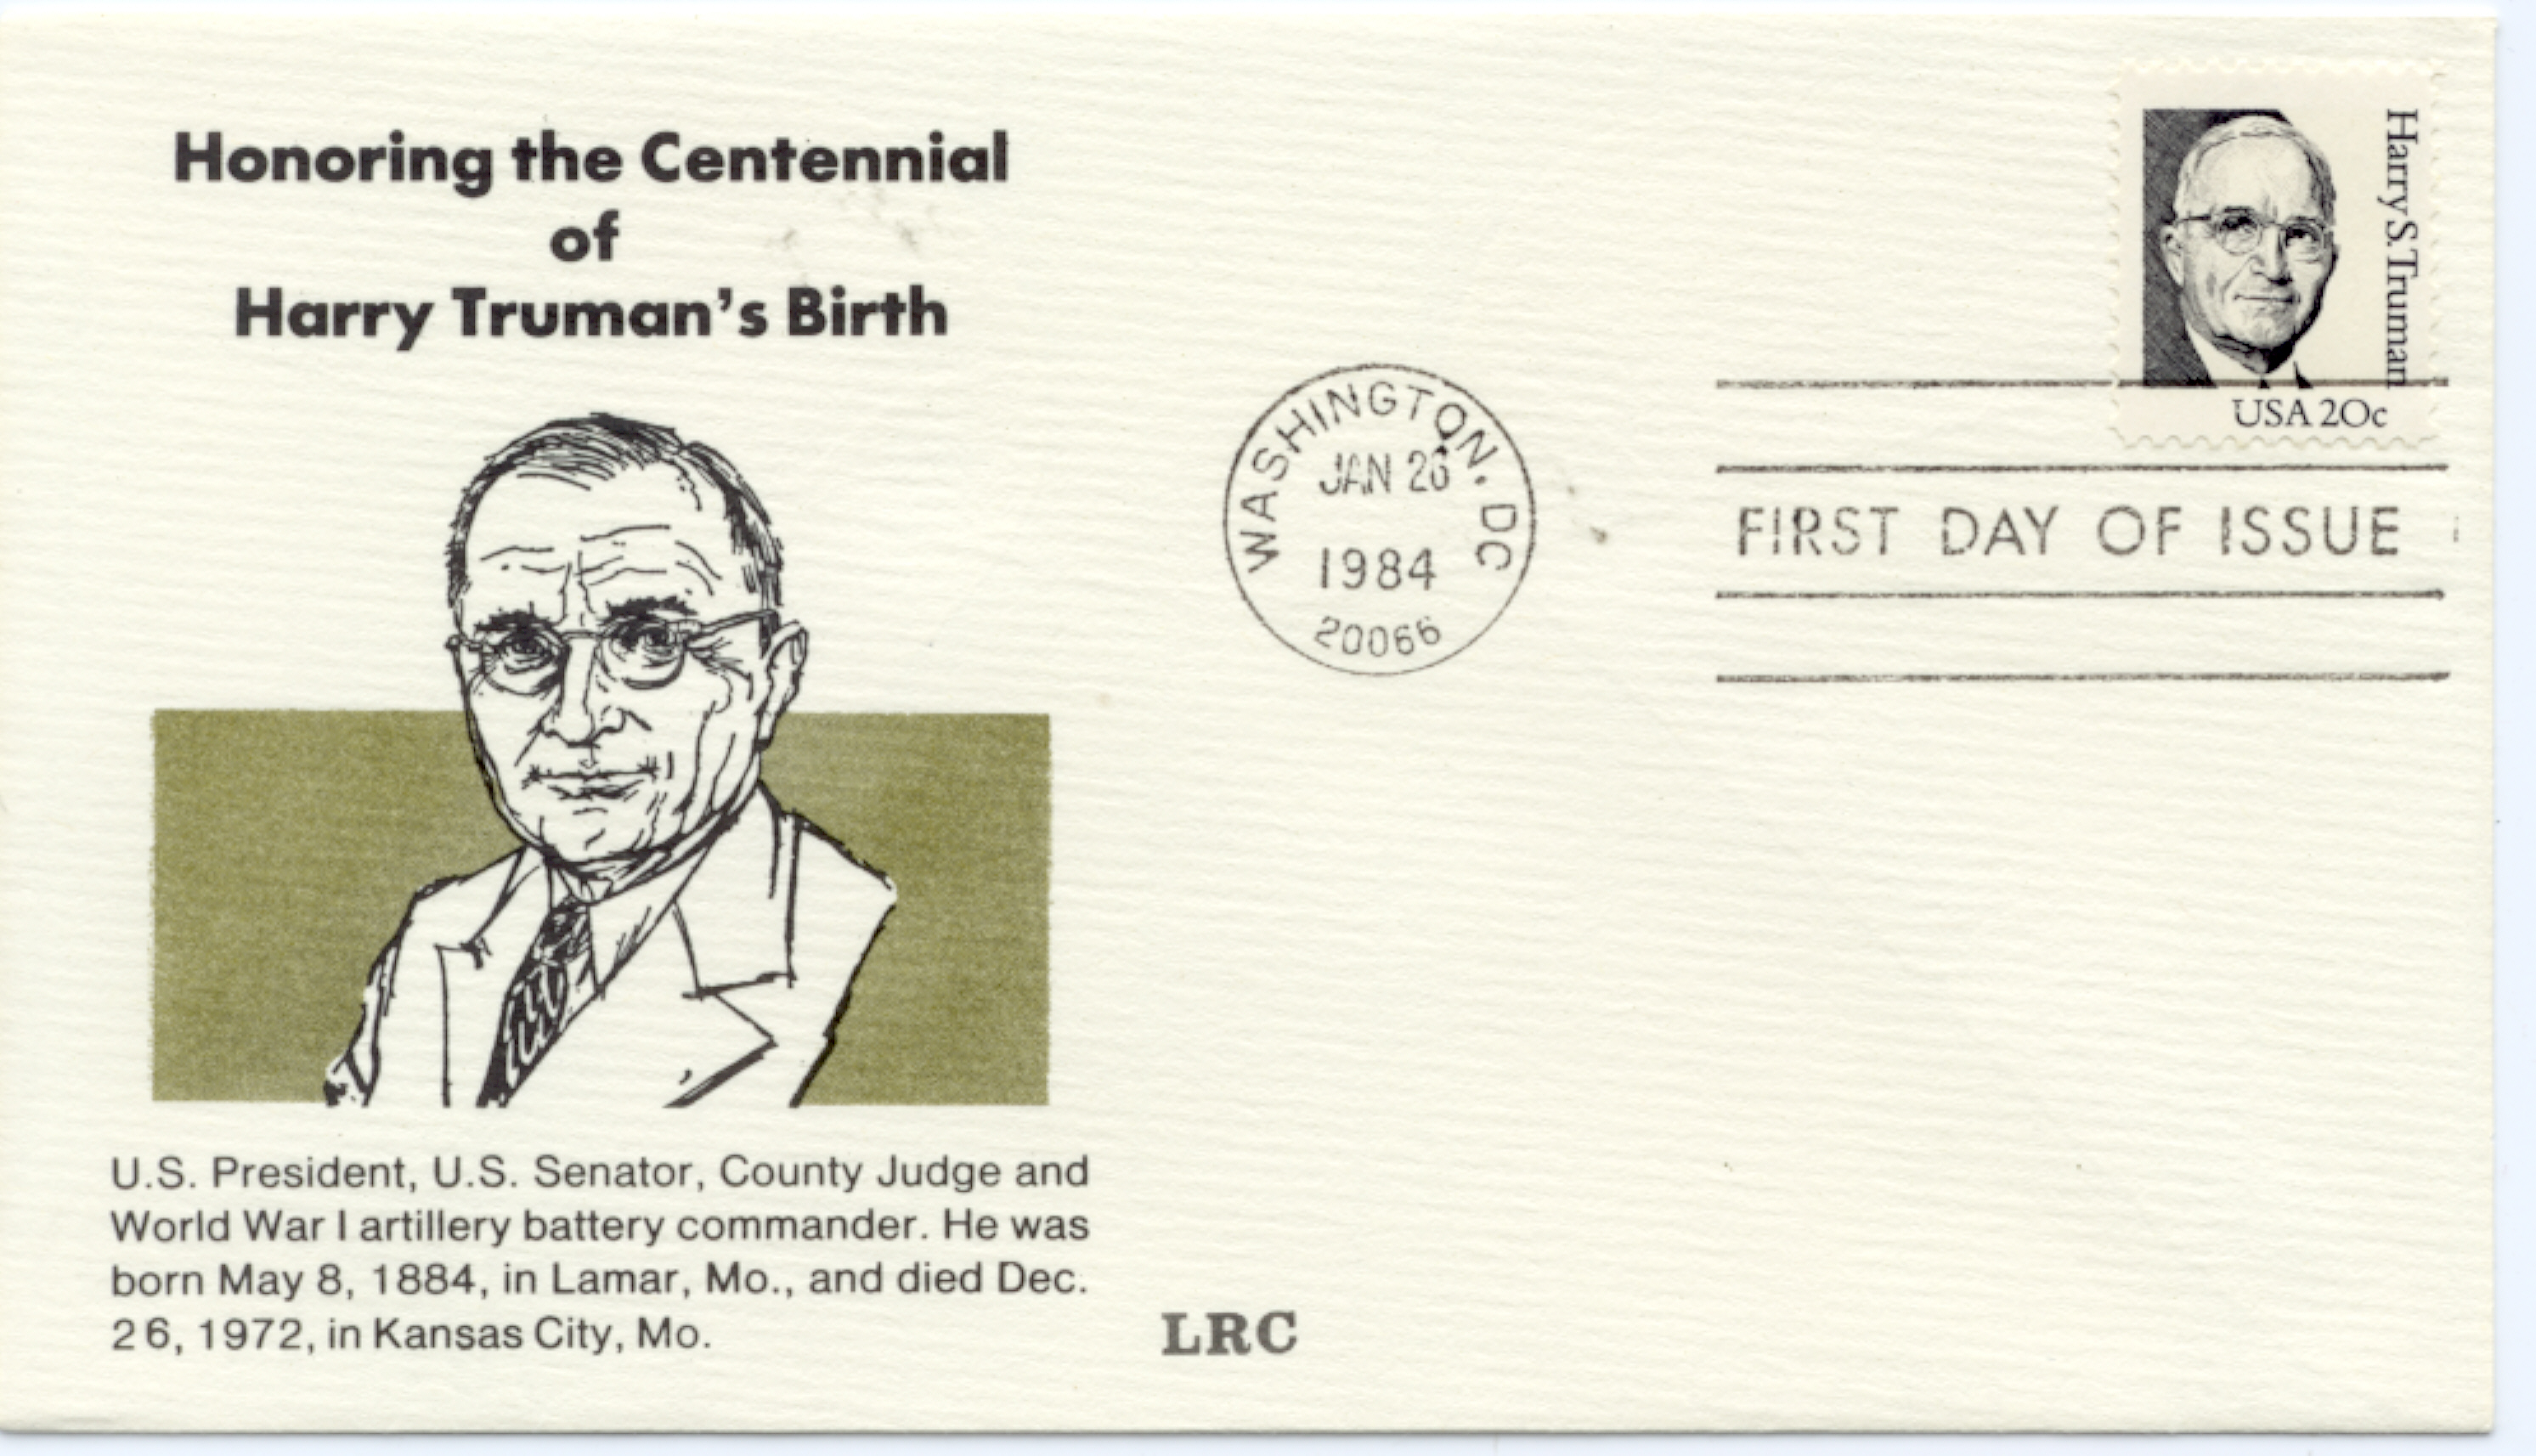 HST Definitive FDC #18